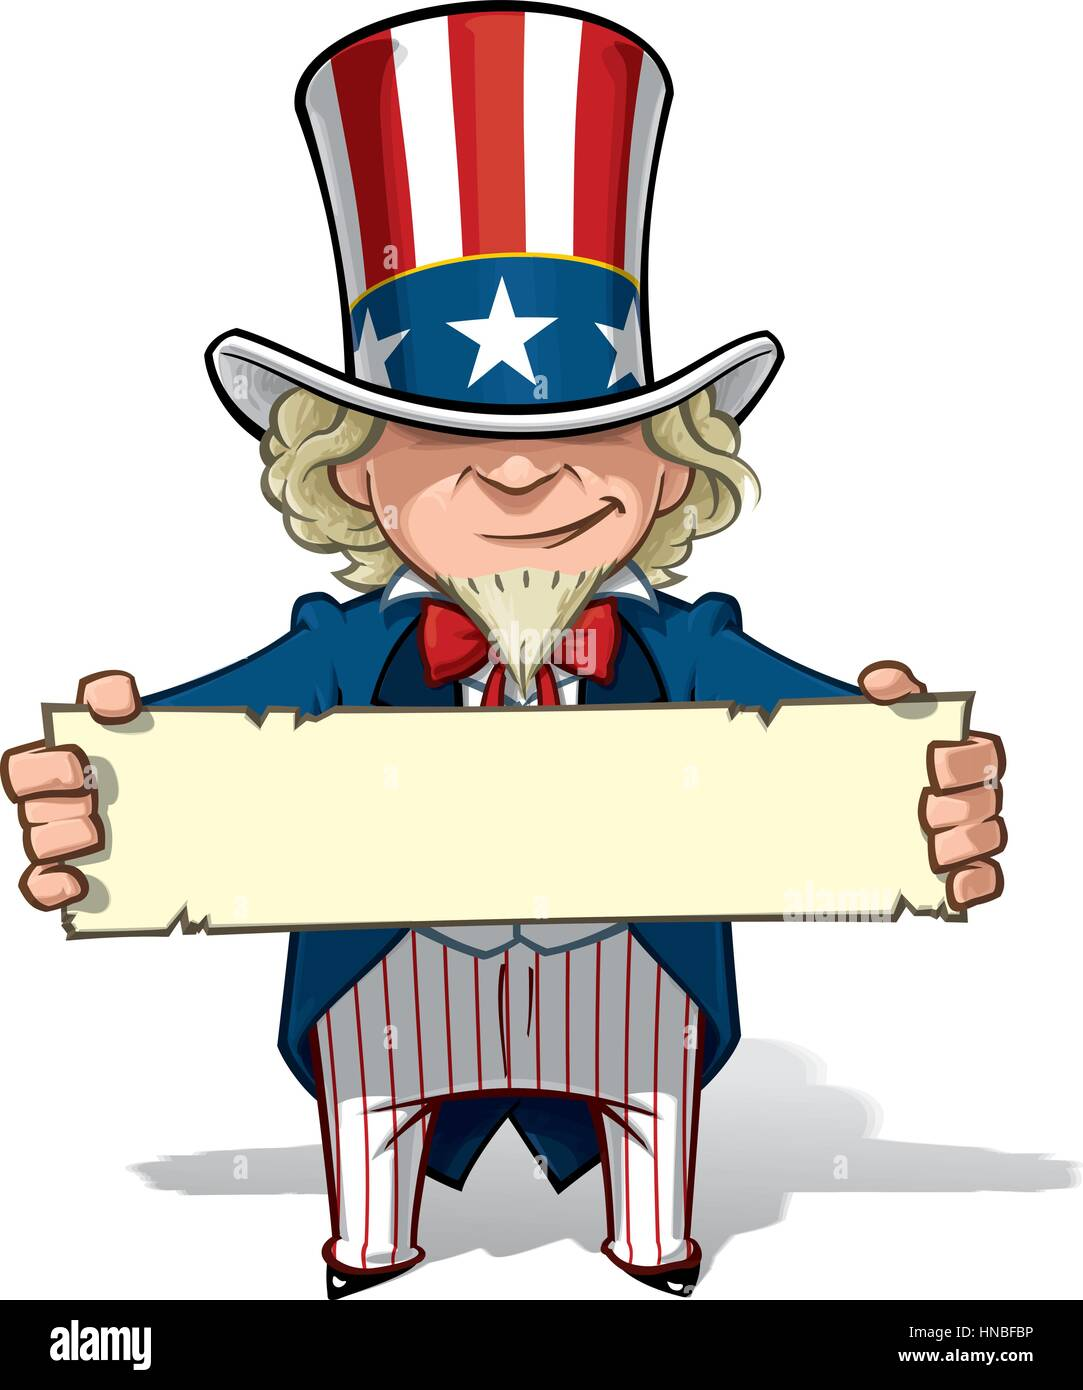 uncle sam vector vectors stock photos uncle sam vector vectors rh alamy com Uncle Sam Cartoon Uncle Sam Funny